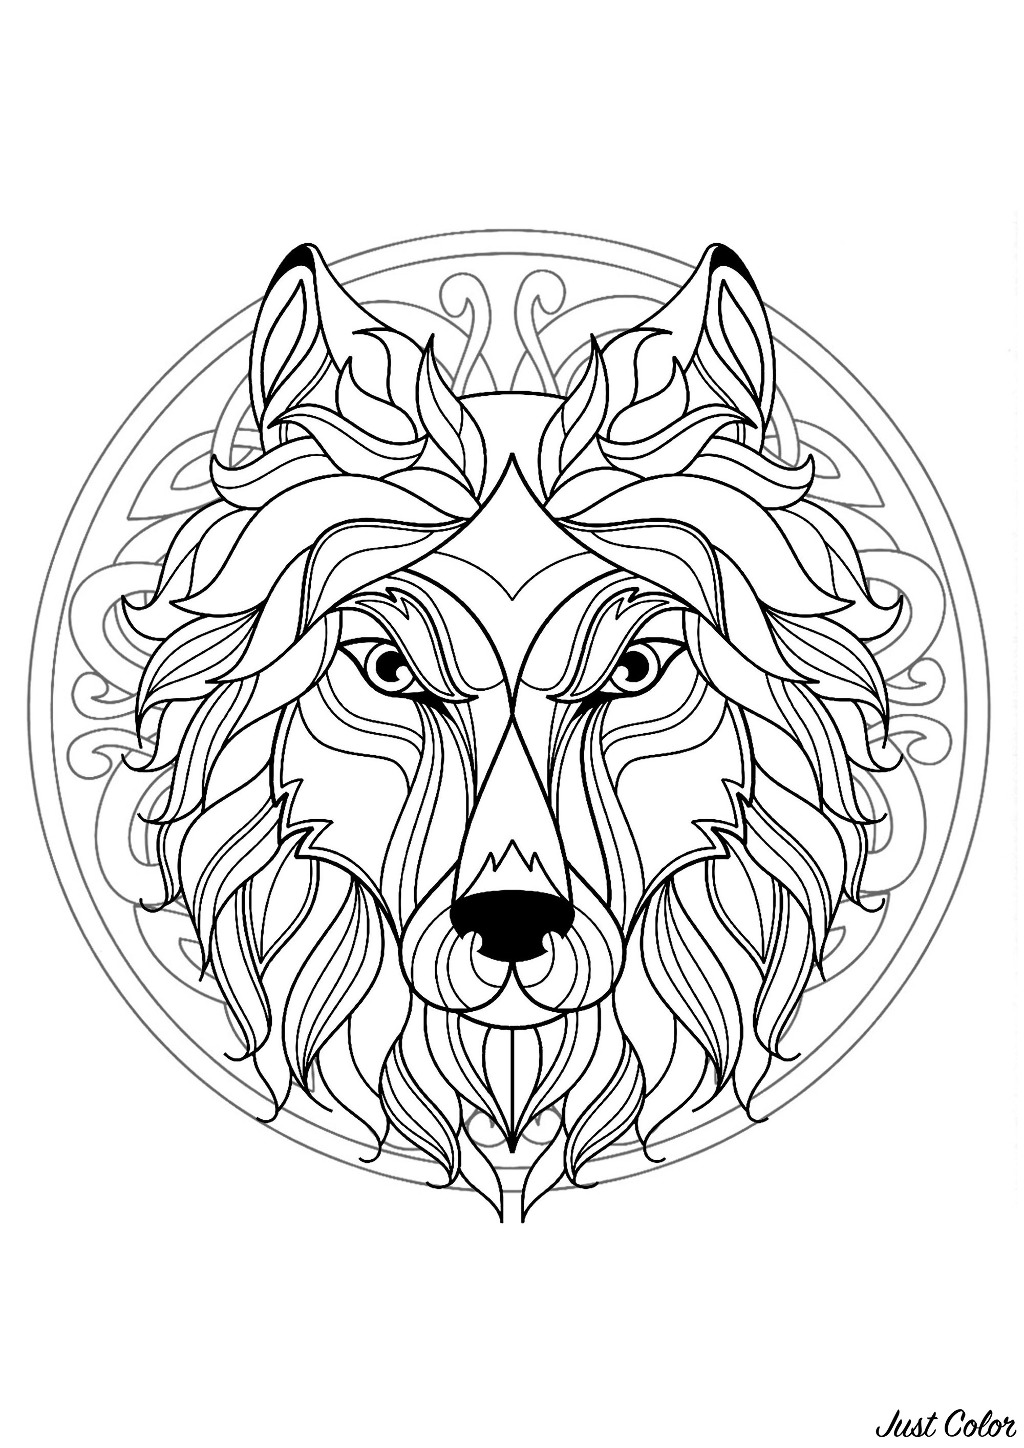 Wolf head in a difficult Mandala. Many small details and little areas for a Mandala very original and harmonious. Do whatever it takes to get rid of any distractions that may interfere with your coloring.